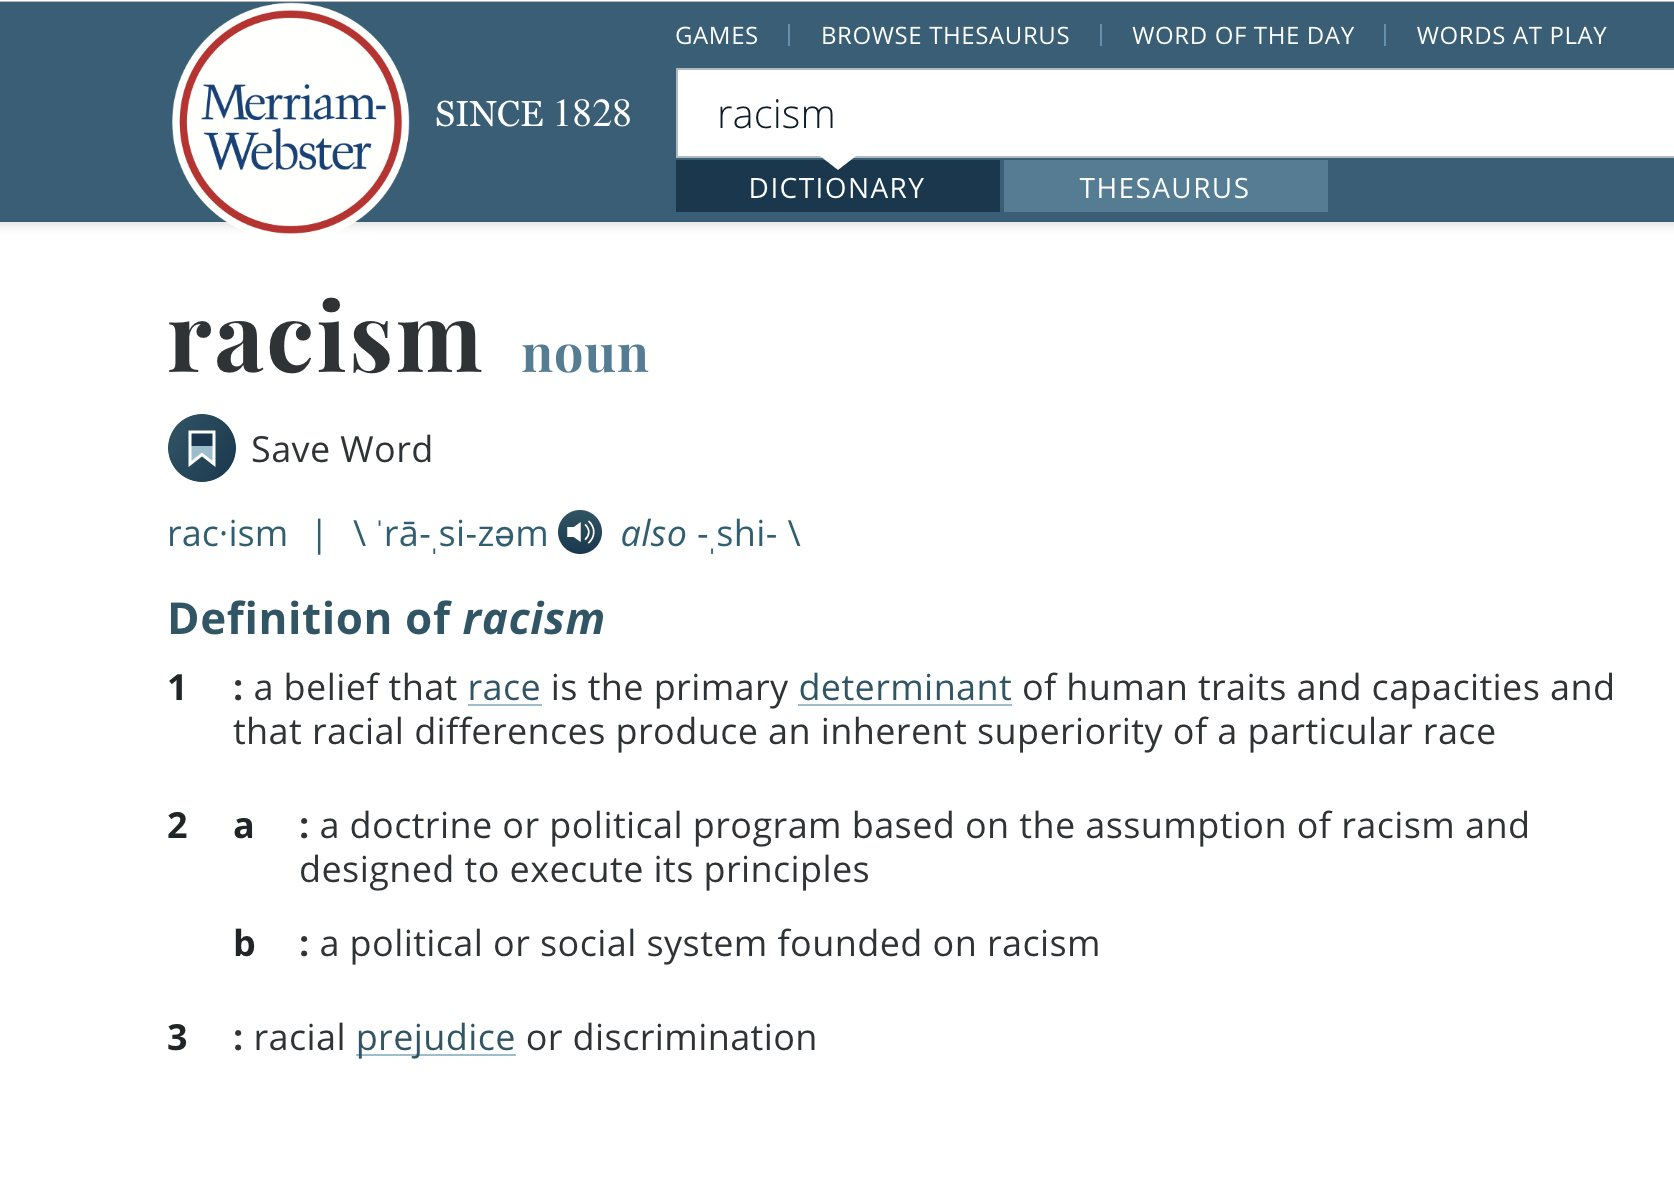 Woman Gets Dictionary to Redefine Racism